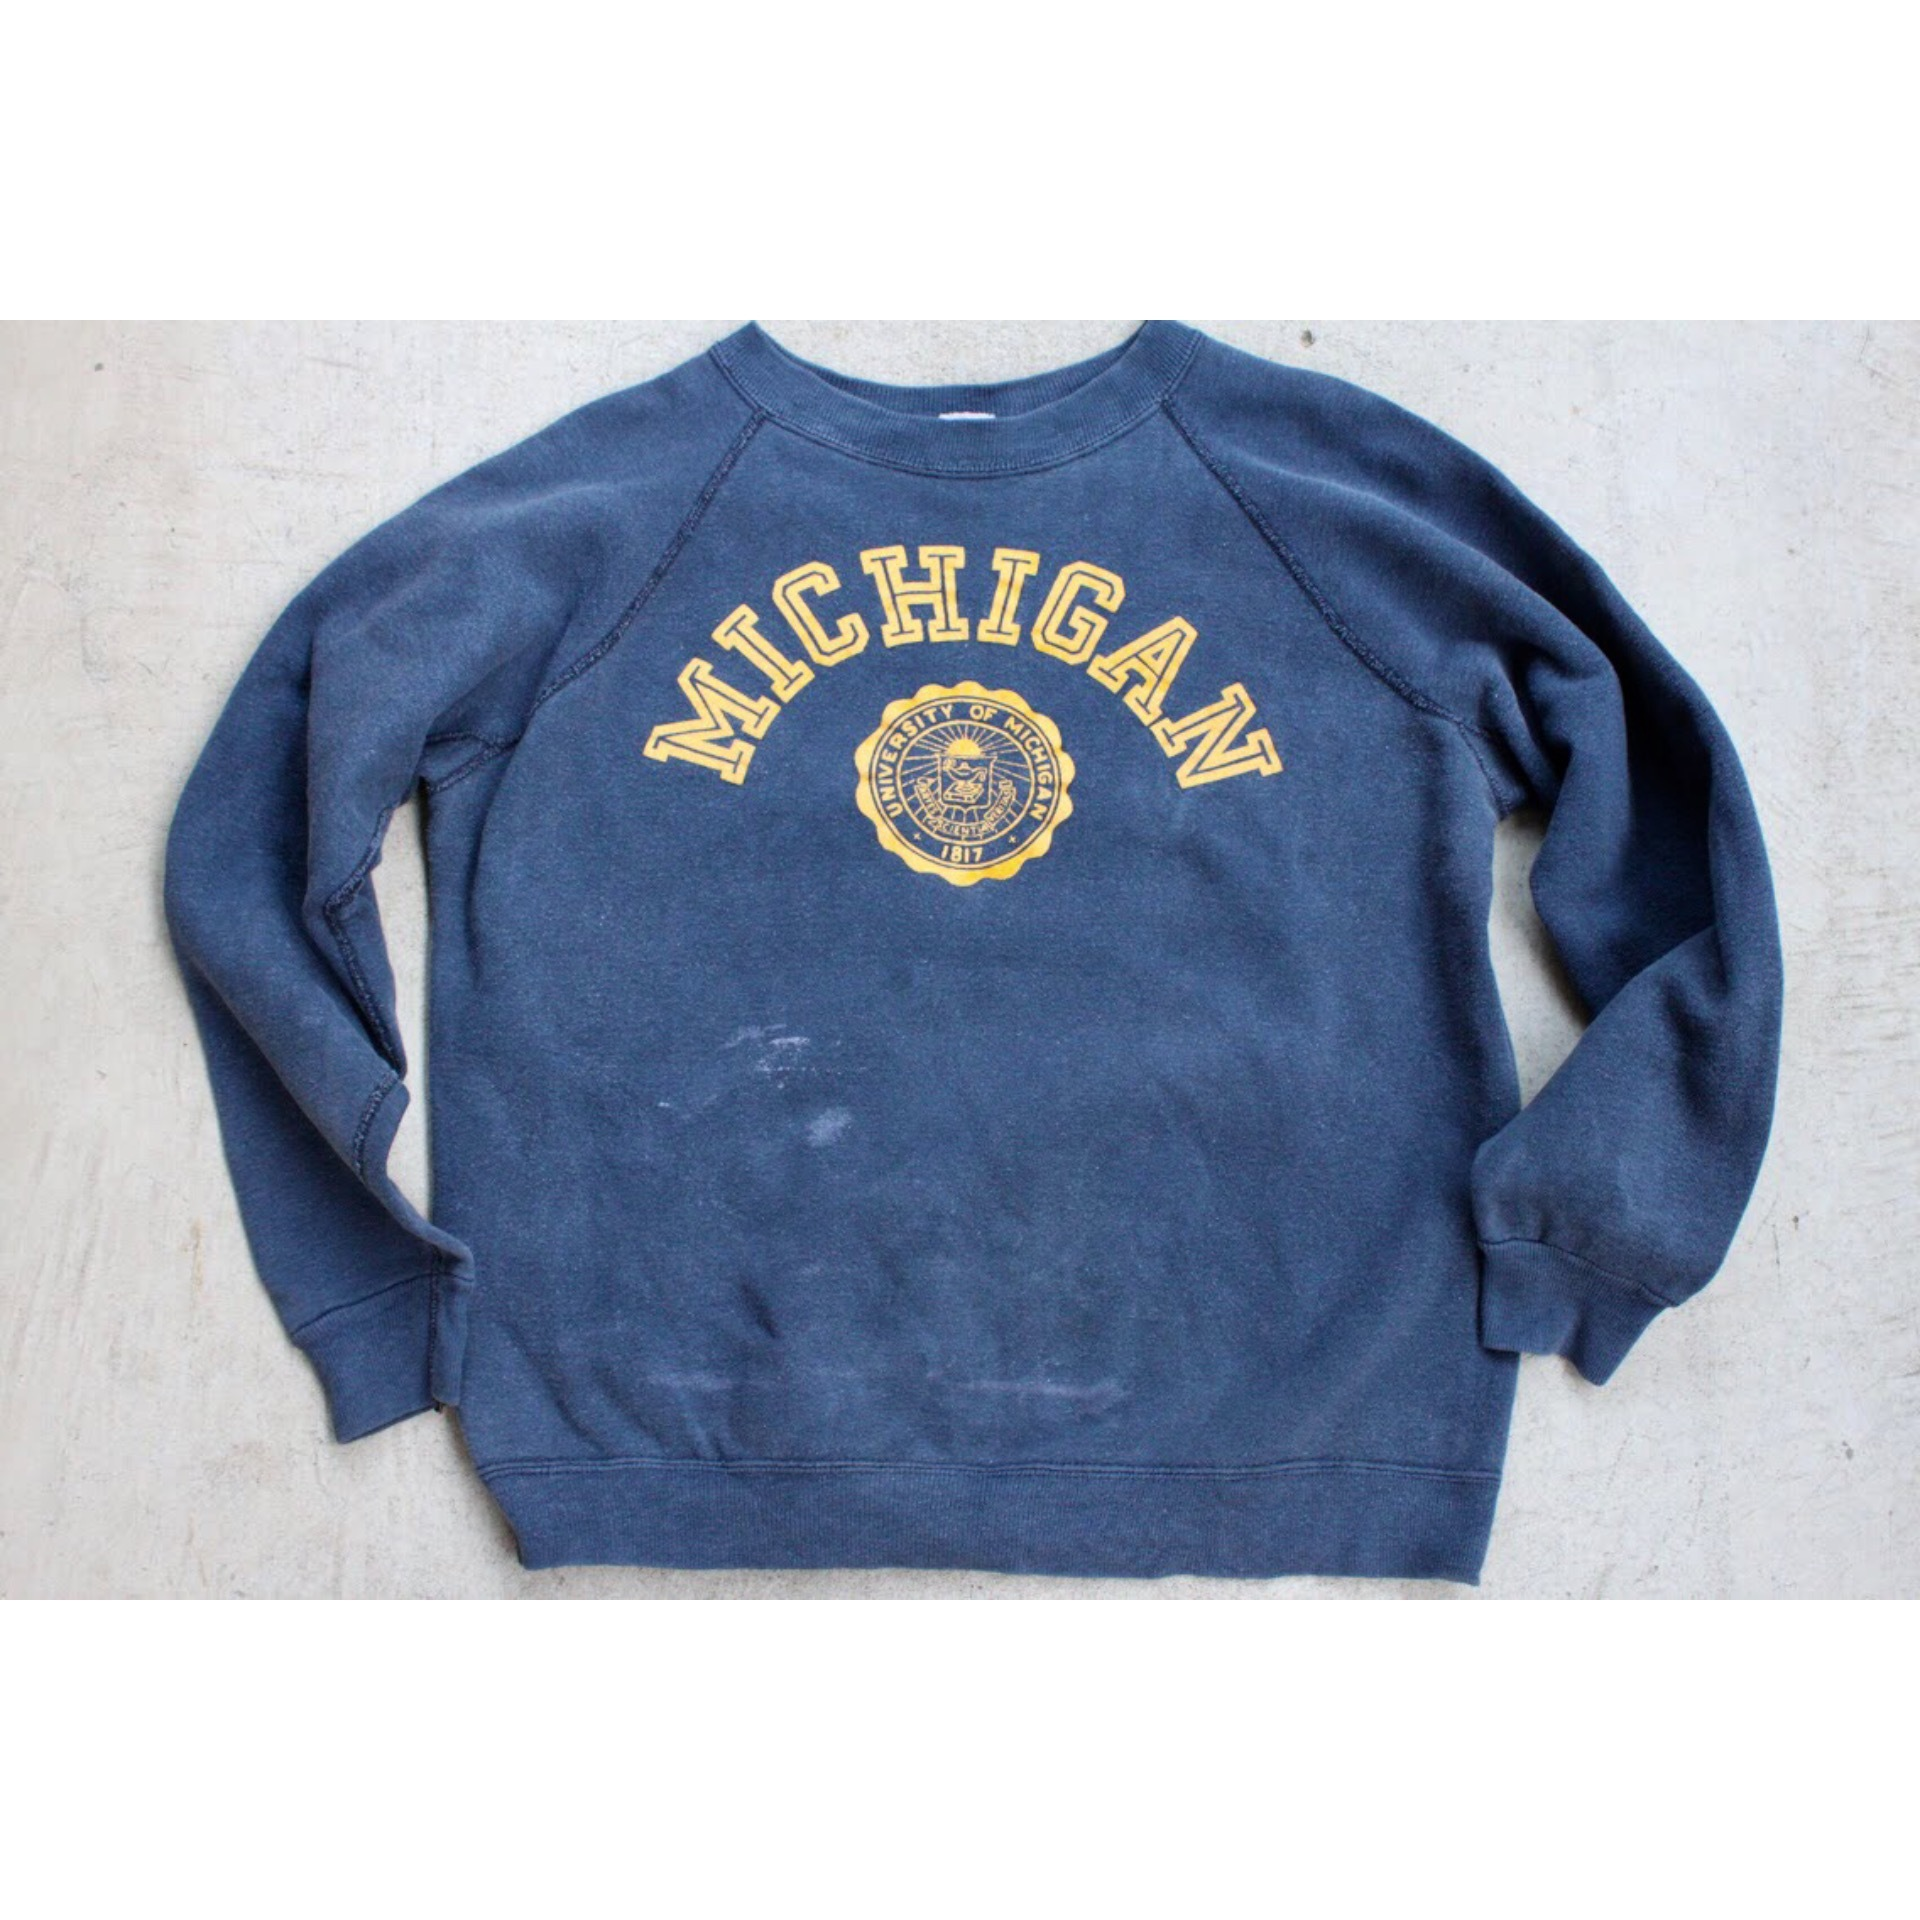 Vintage 70s sweater by Champion